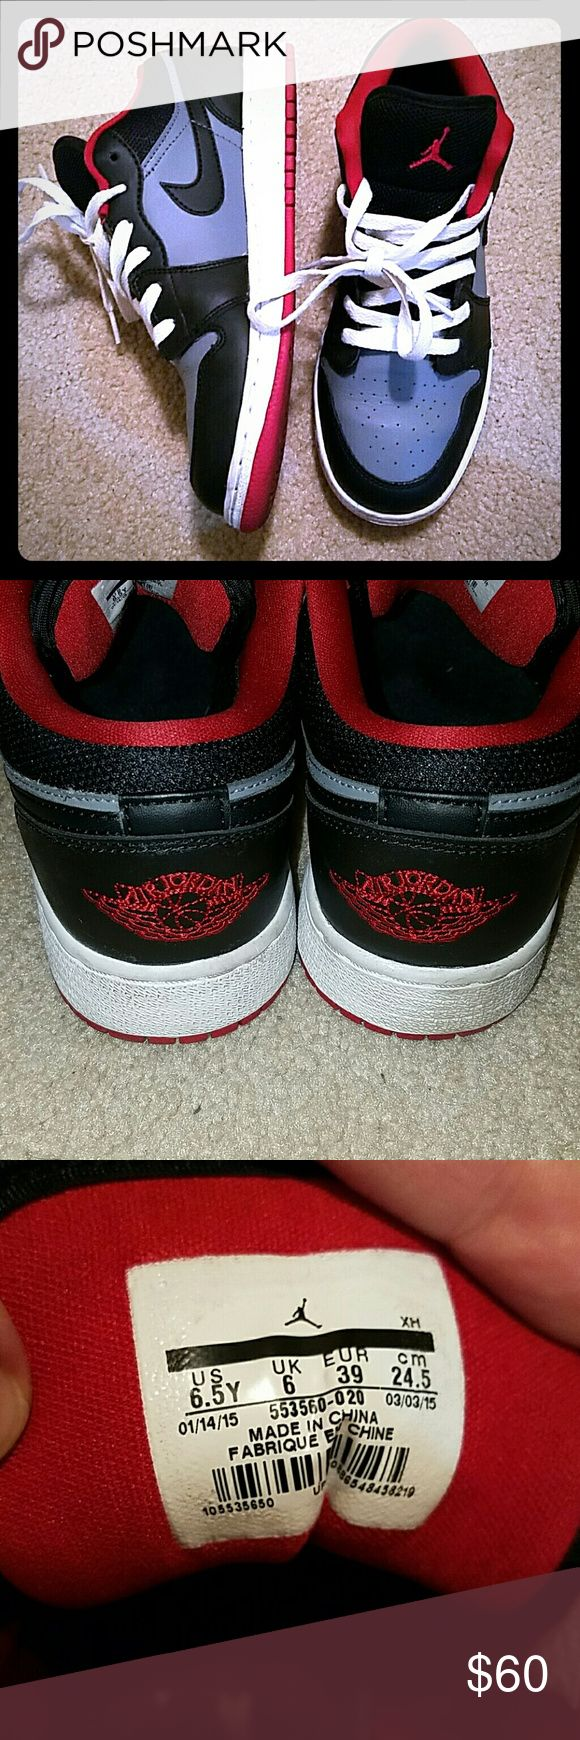 Nike Air Jordan's low top Worn but in GREAT condition | barely any creases | name brand Nike | does not come with original box or any shoe box Jordan Shoes Sneakers